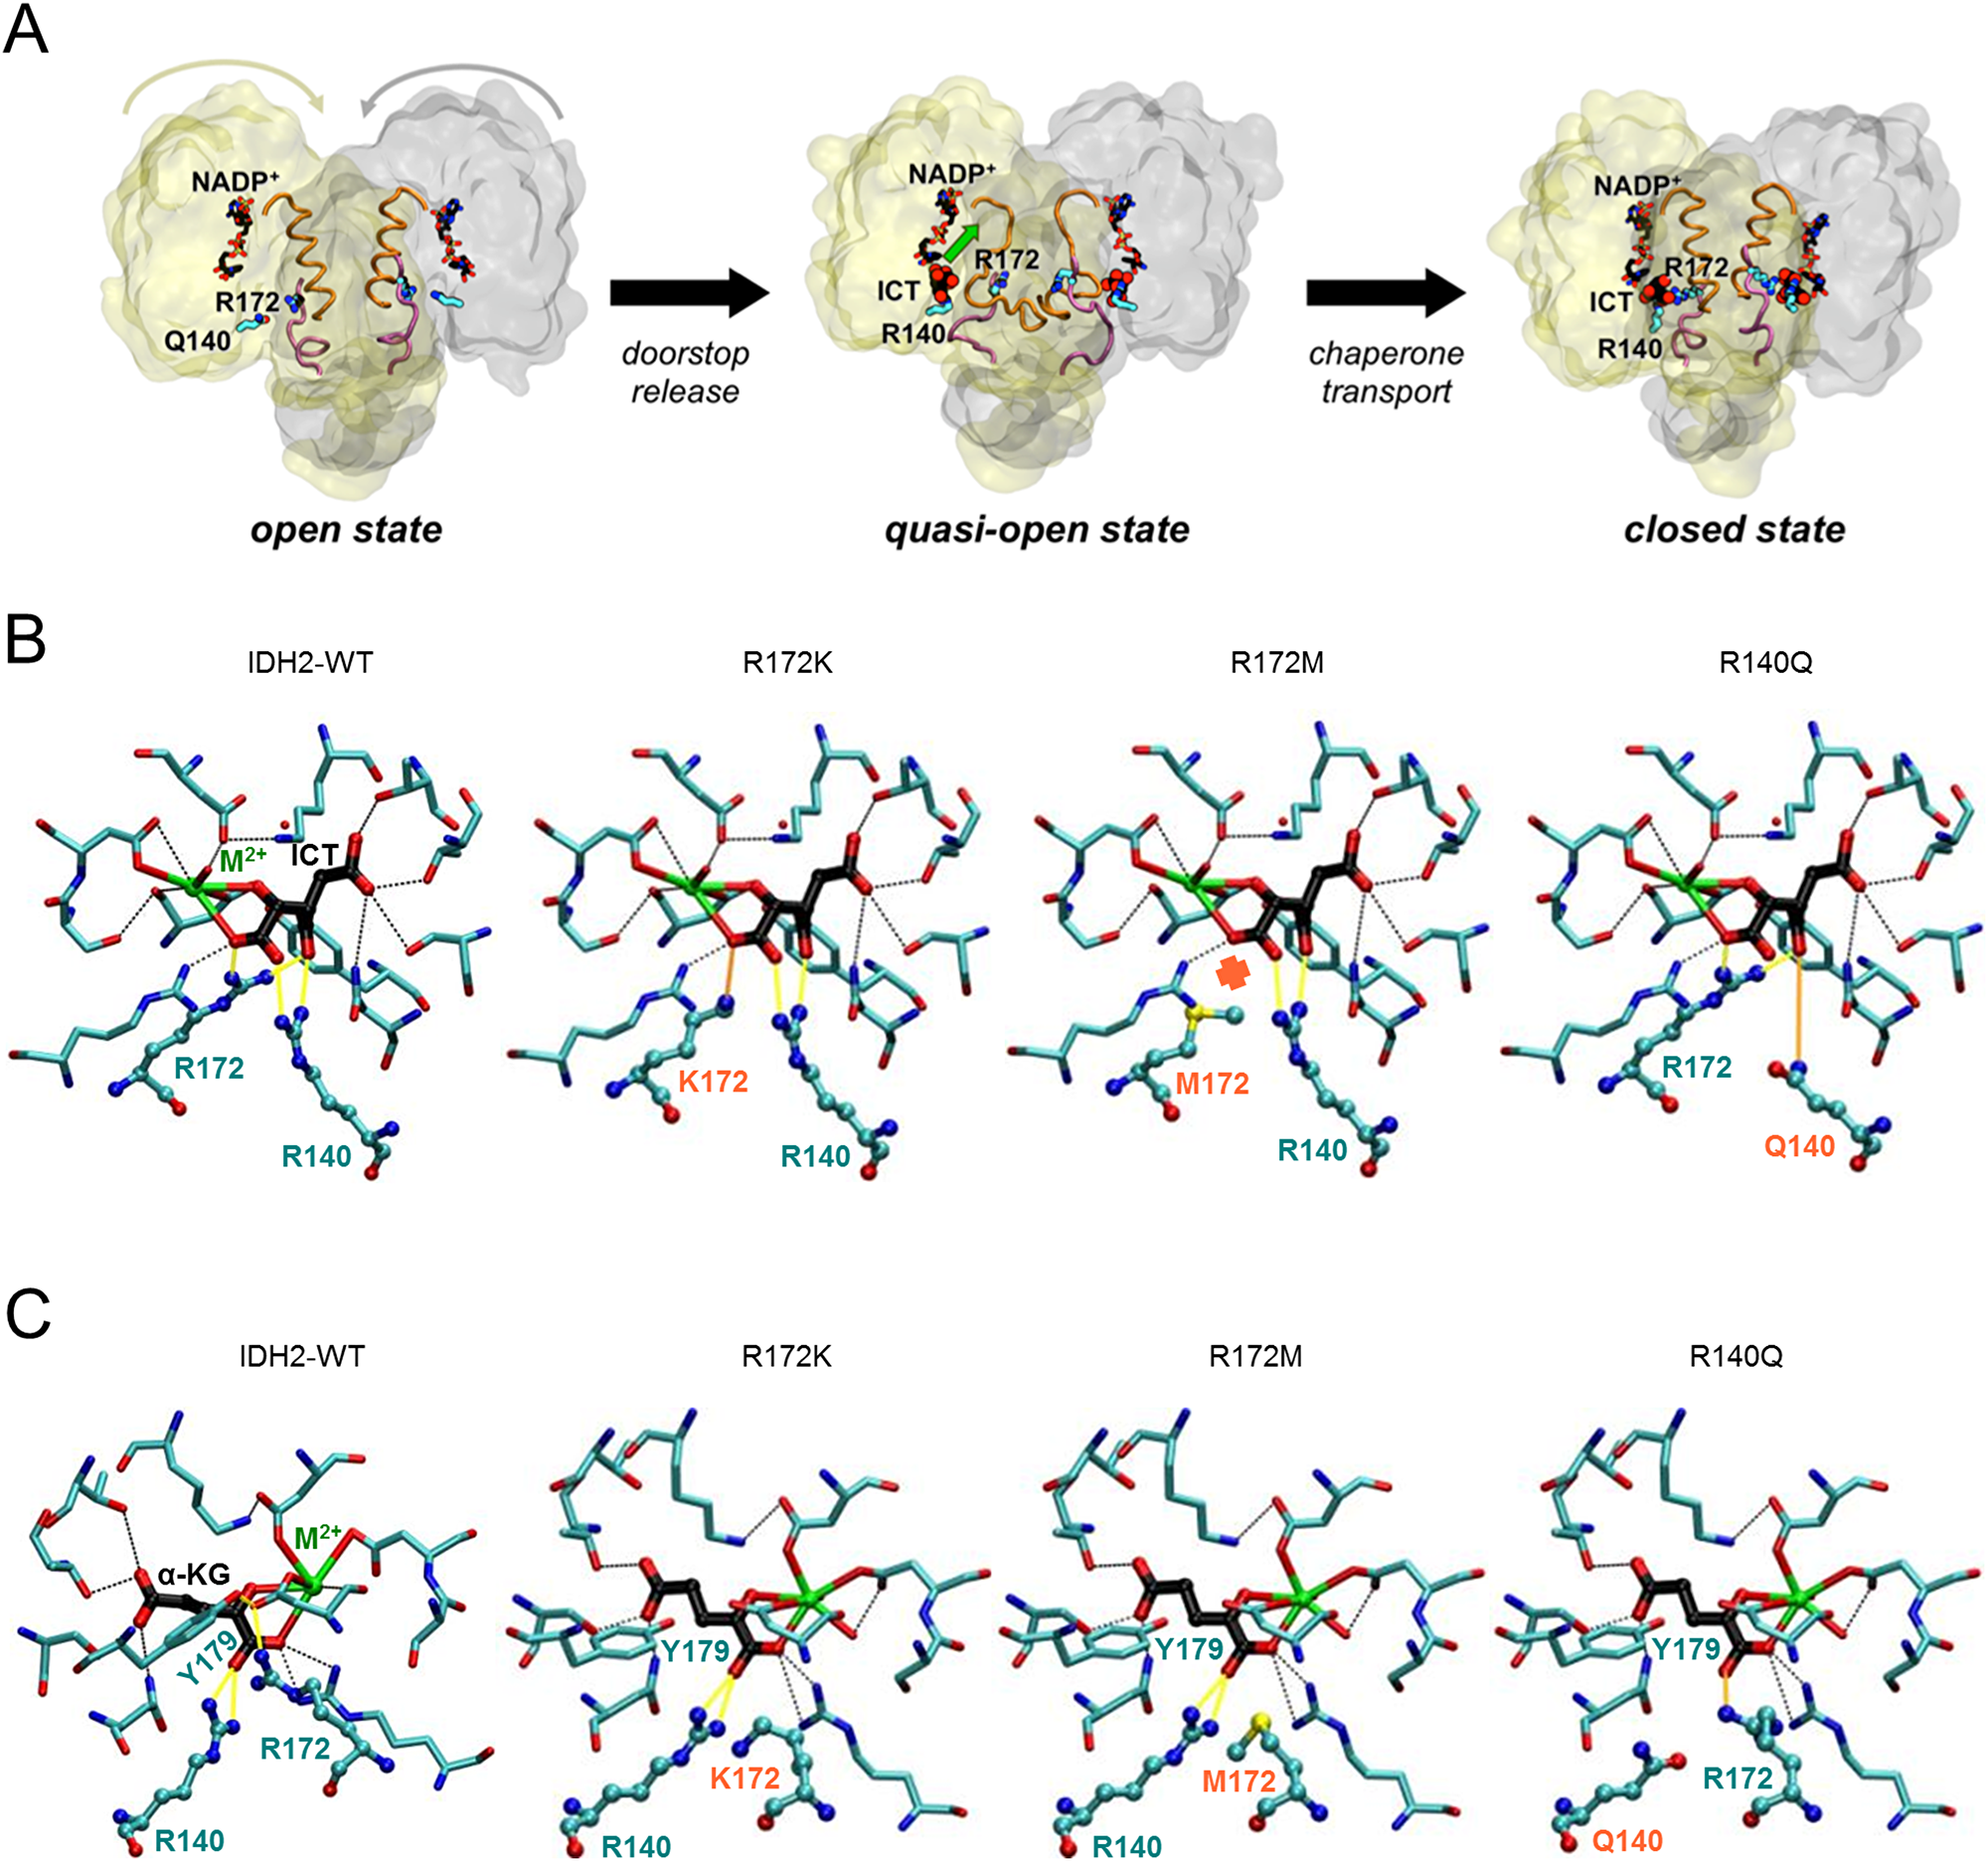 IDH2 mutations at R172 and R140 differentially alter the IDH2 catalytic site structure.